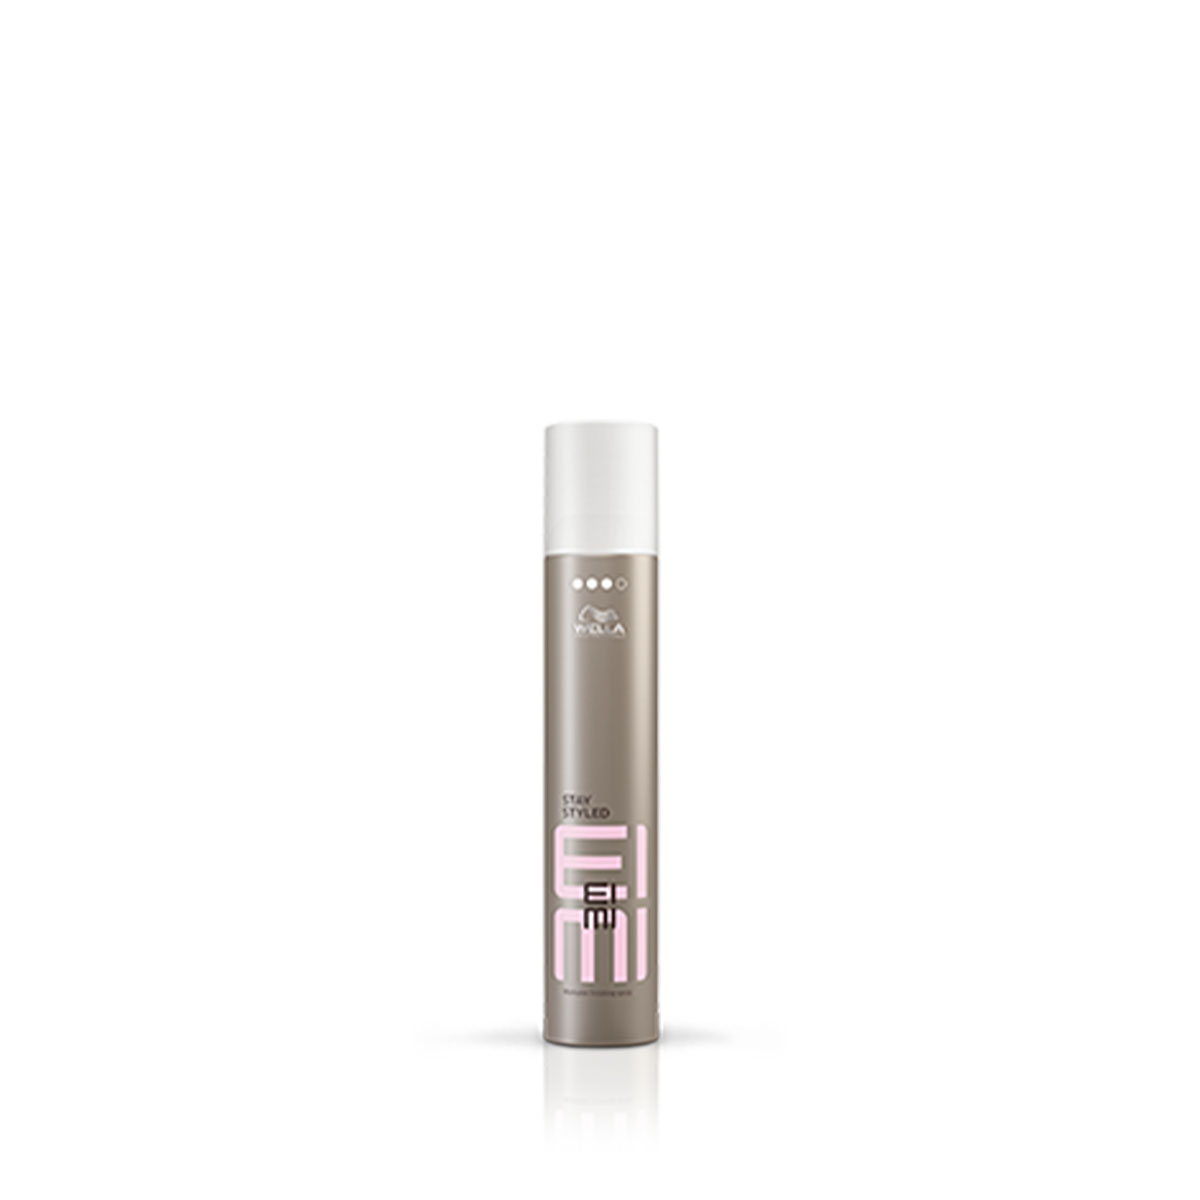 Eimi Stay Styled Spray 300 Ml